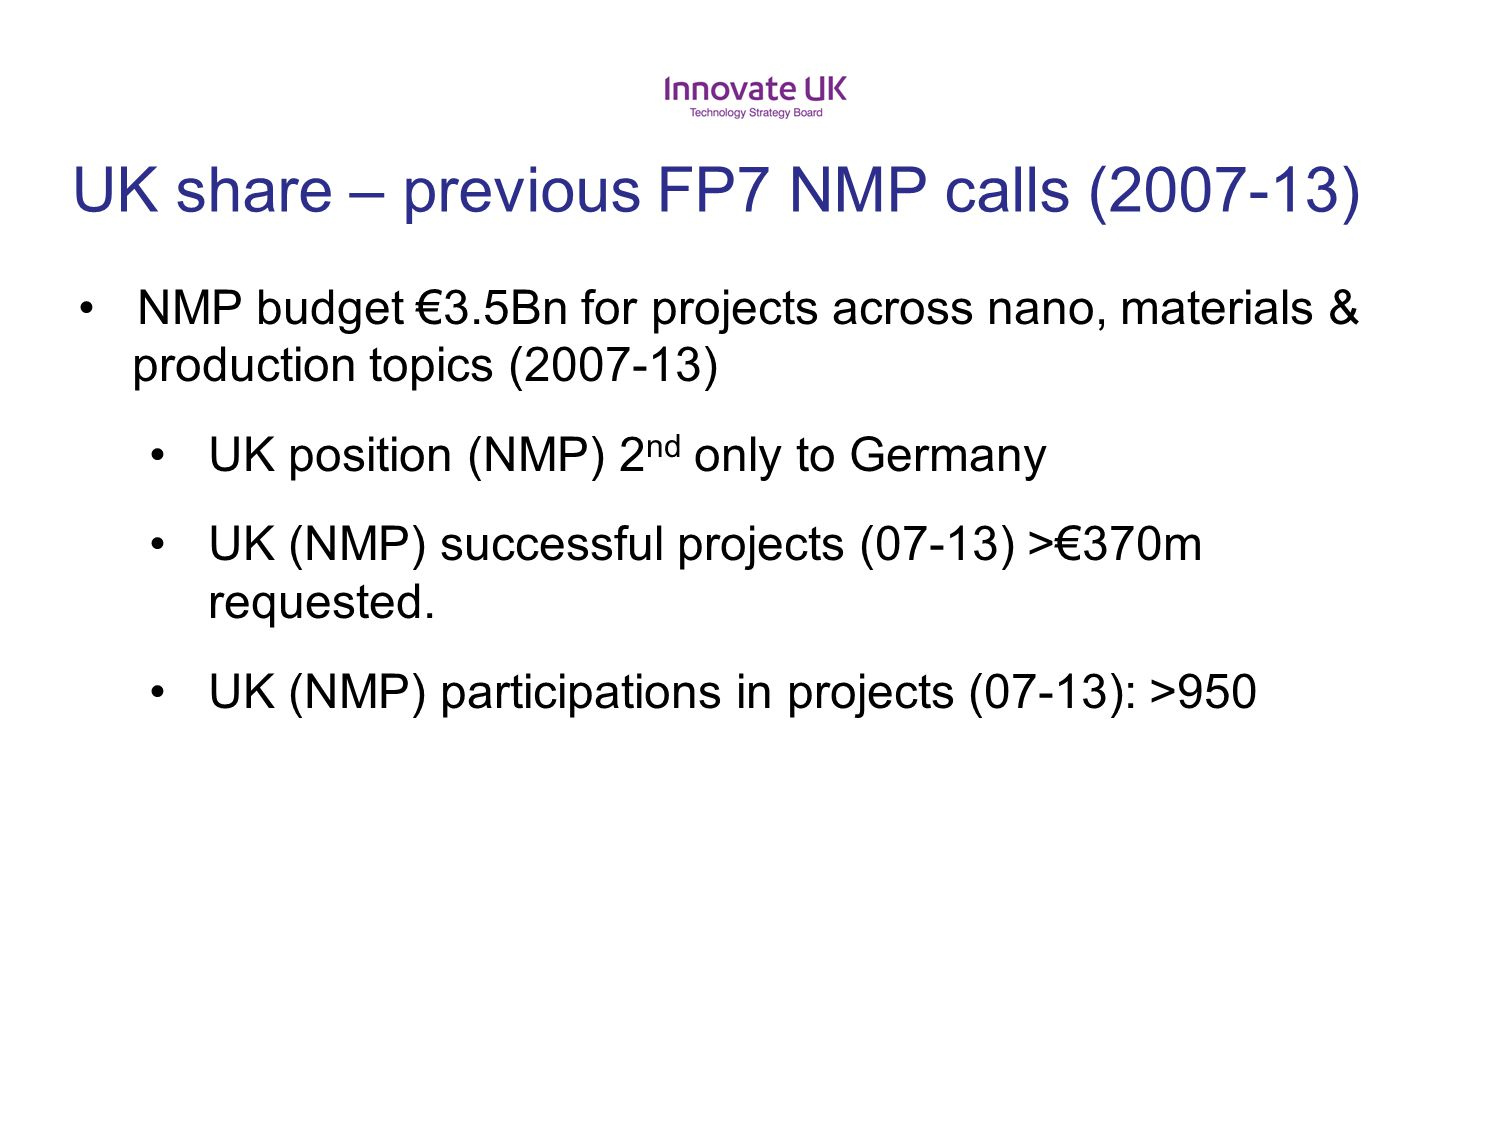 UK share – previous FP7 NMP calls (2007-13)